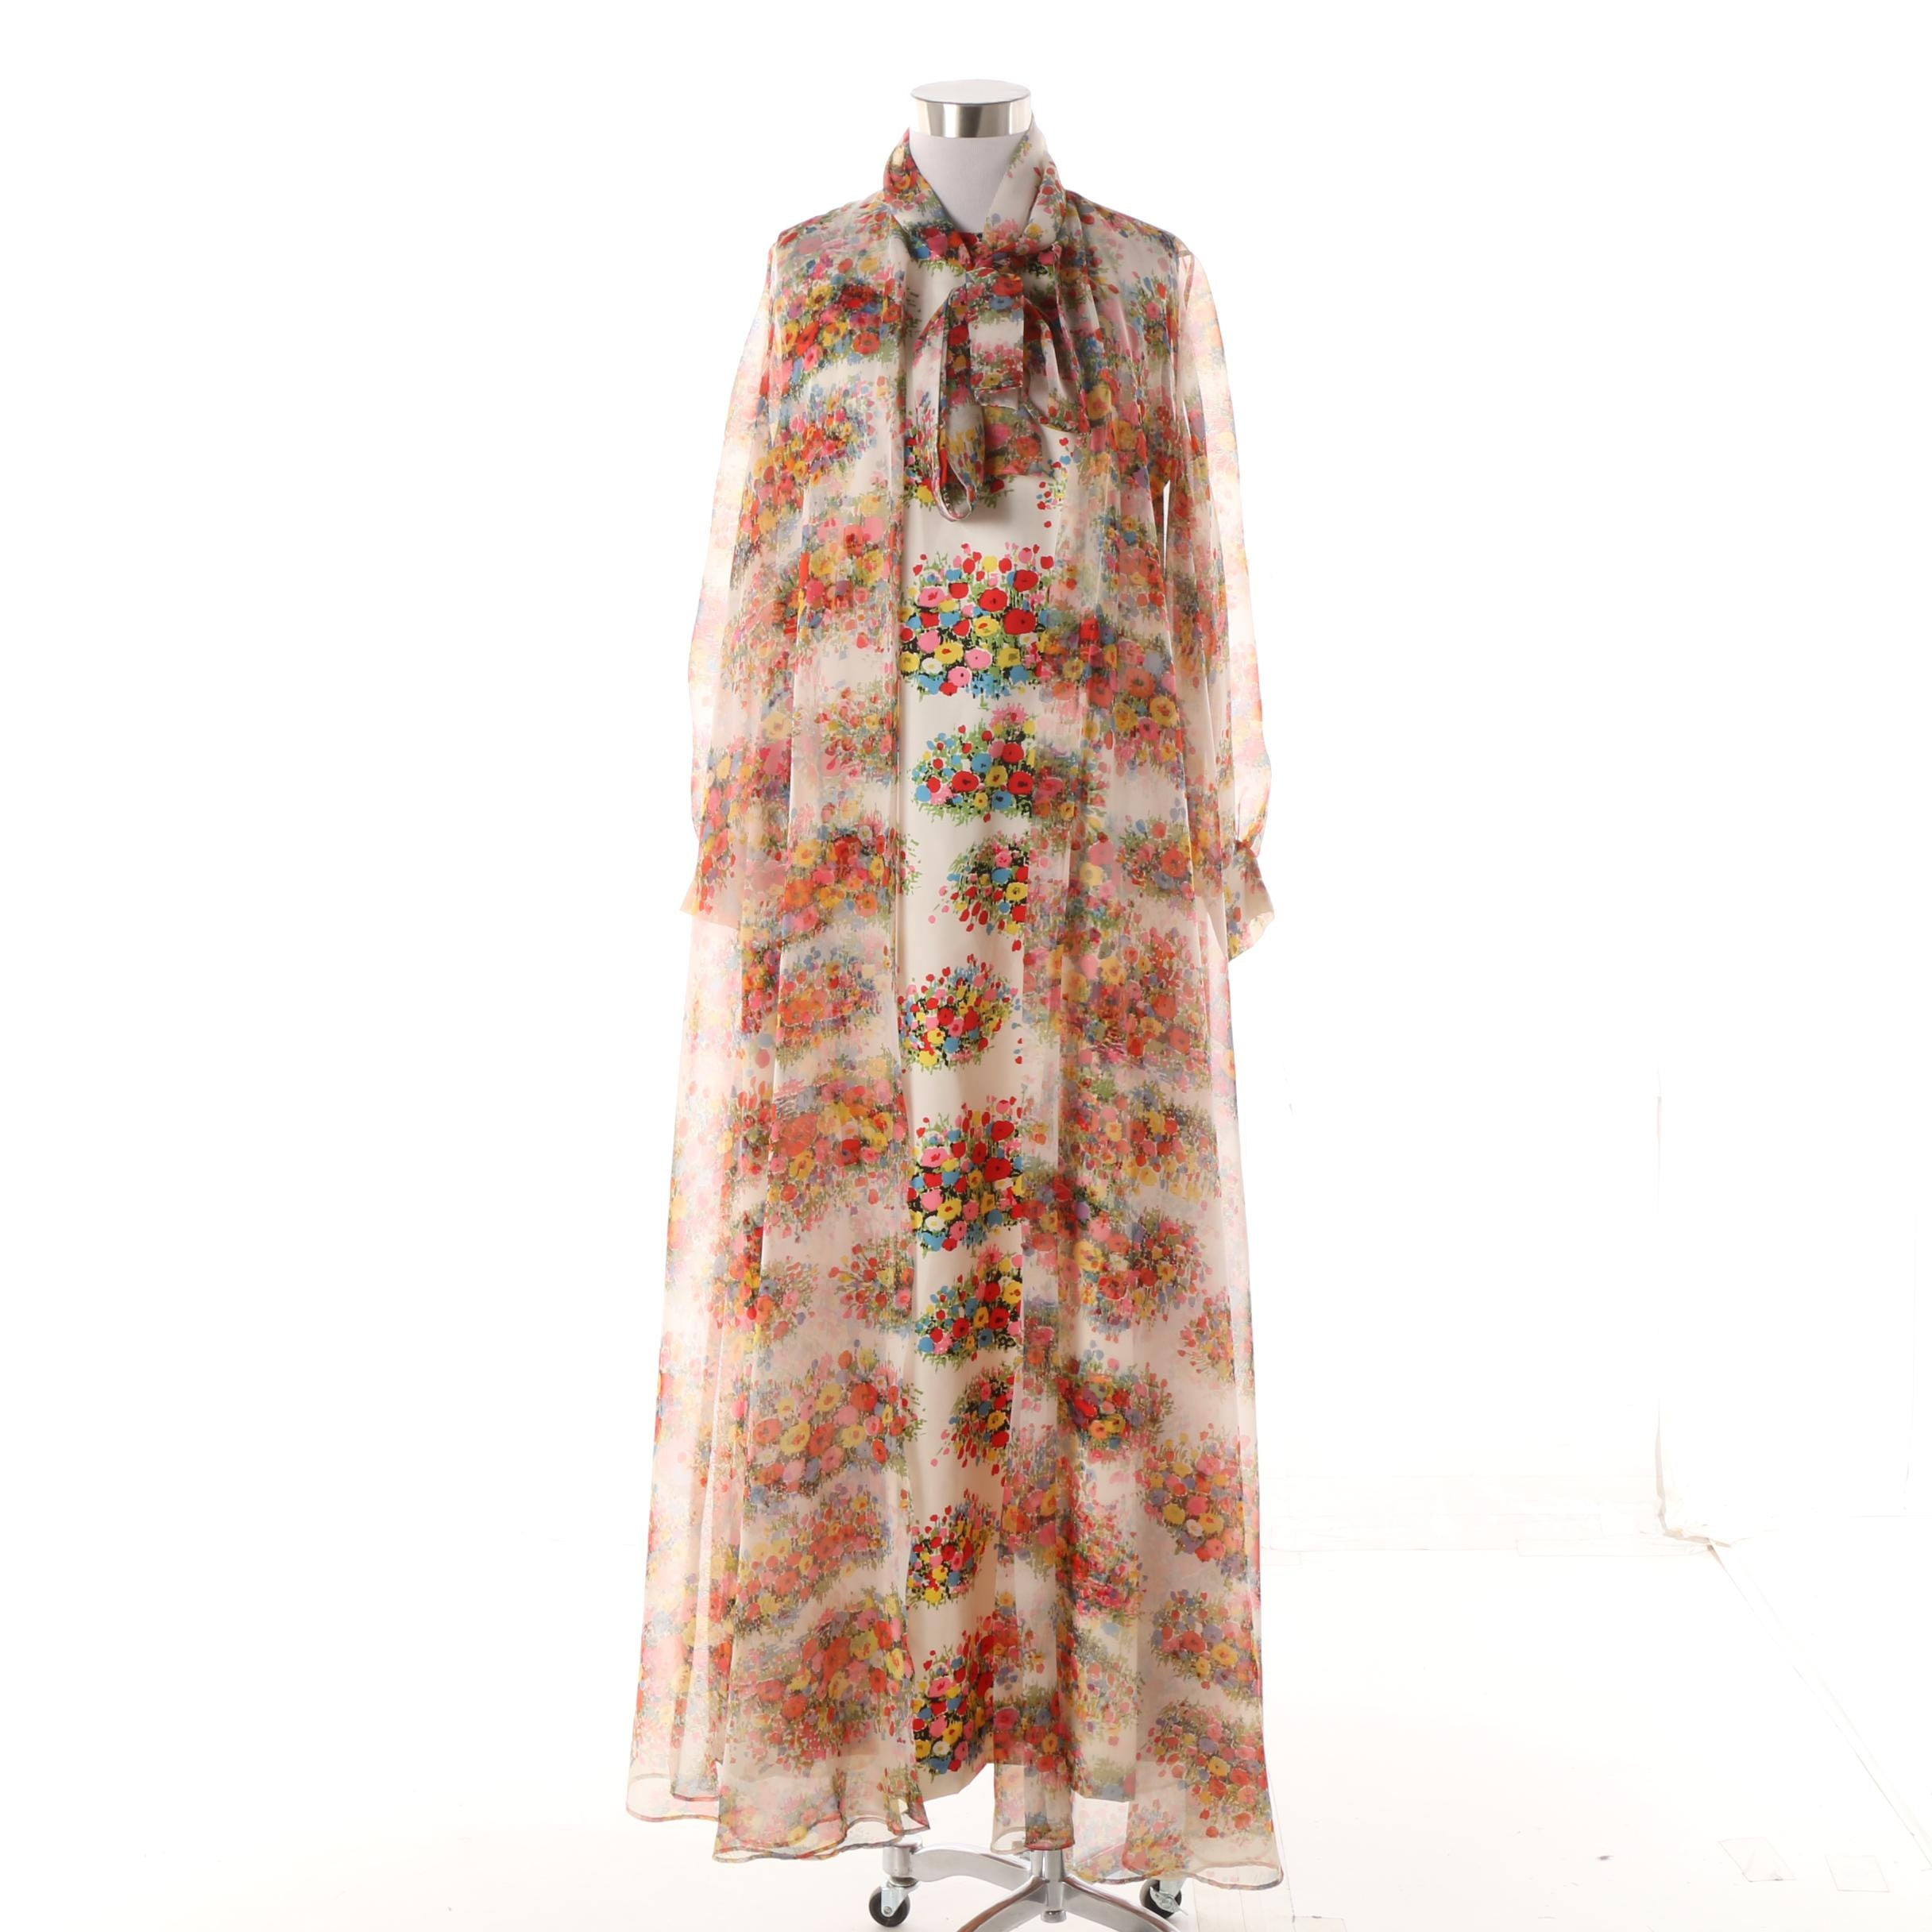 1970s Kohler Collection Silk Twill Floral Print Maxi Dress with Chiffon Coat